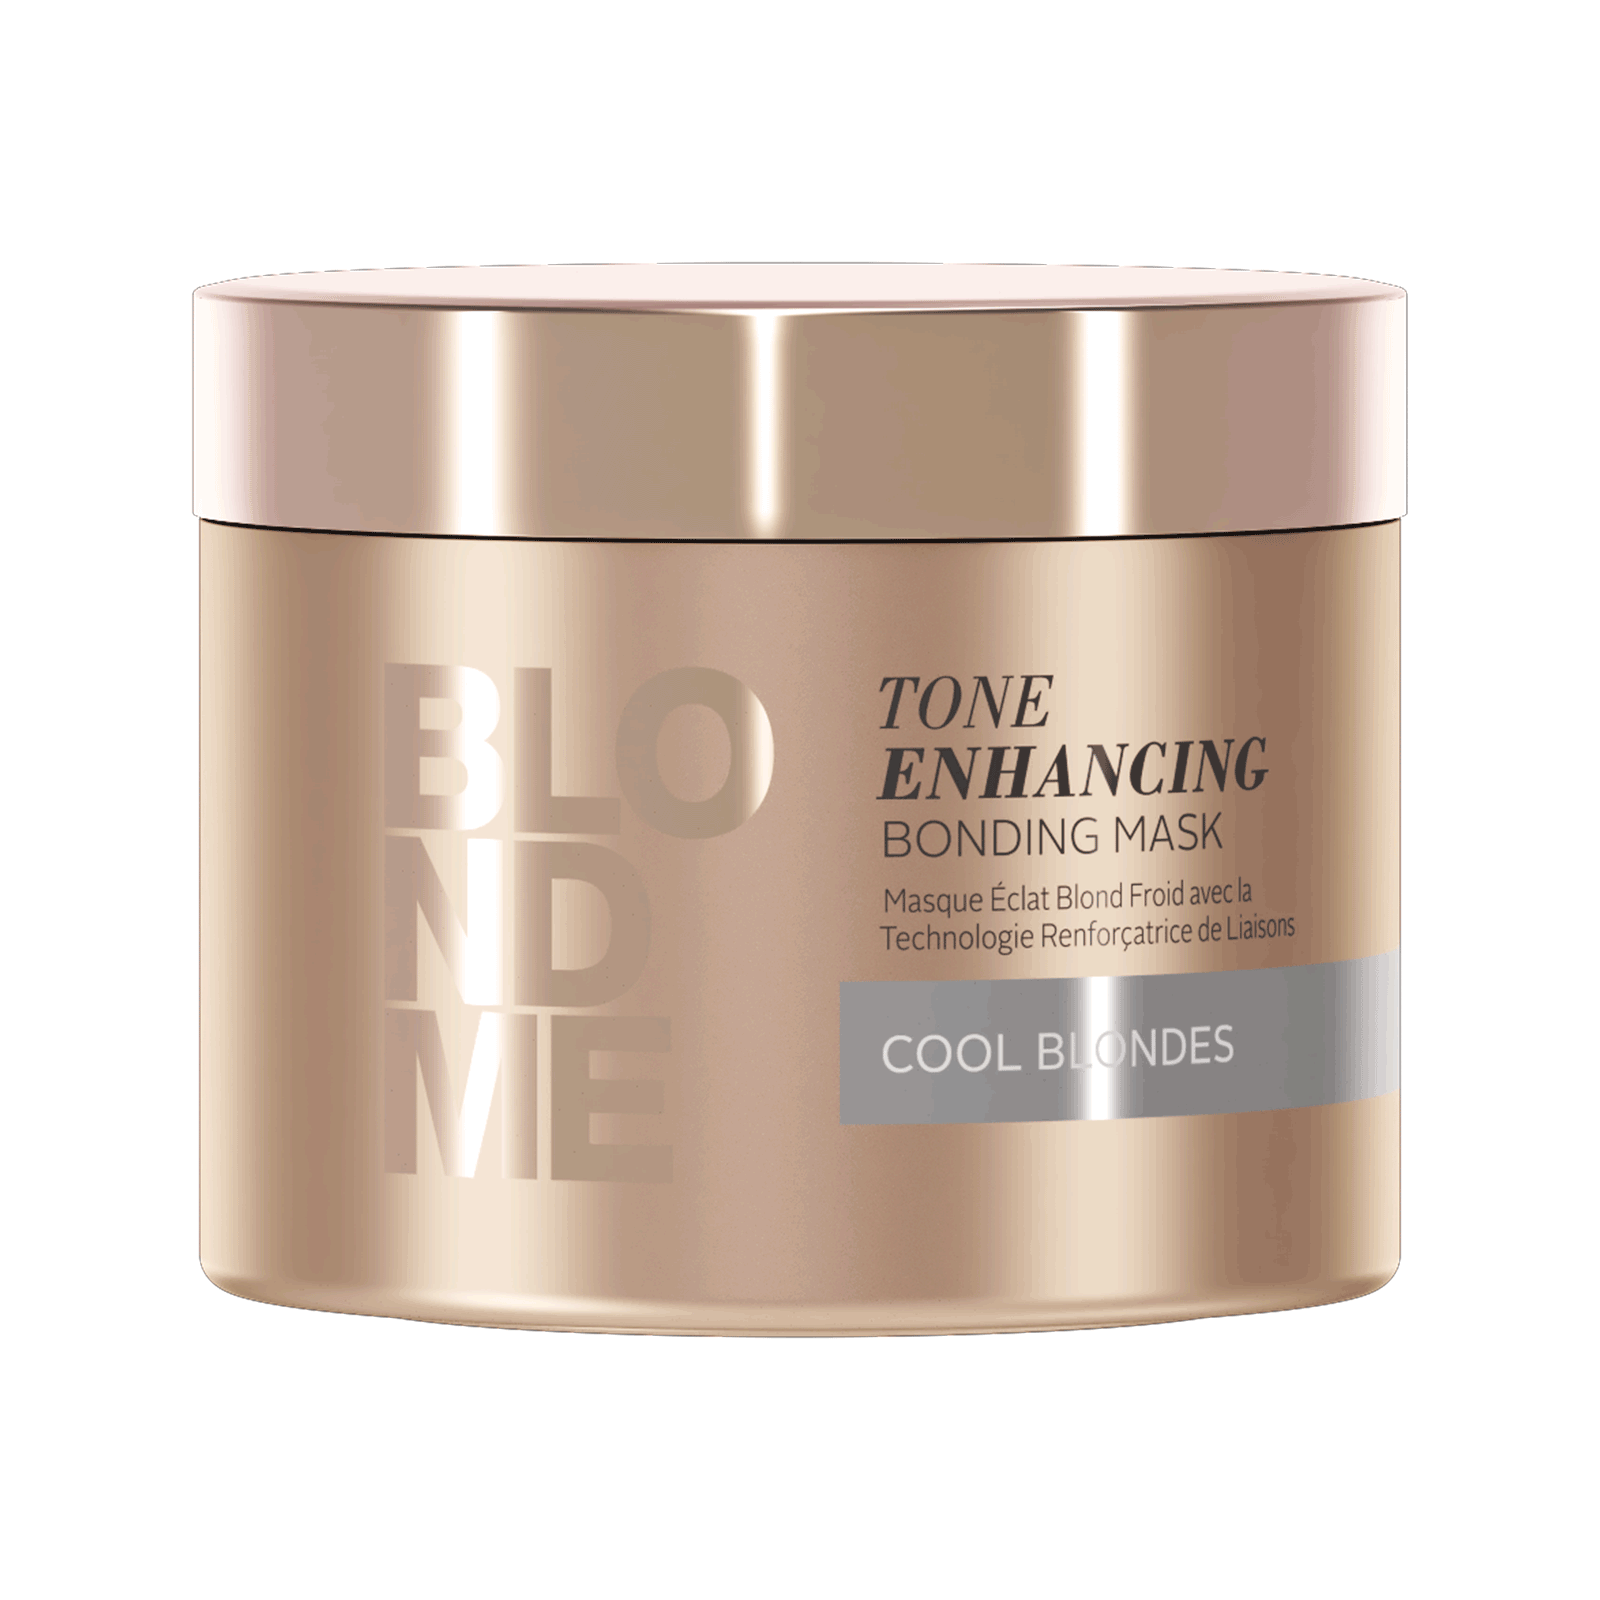 BlondMe - Tone Enhancing Bonding Mask for Cool Blondes